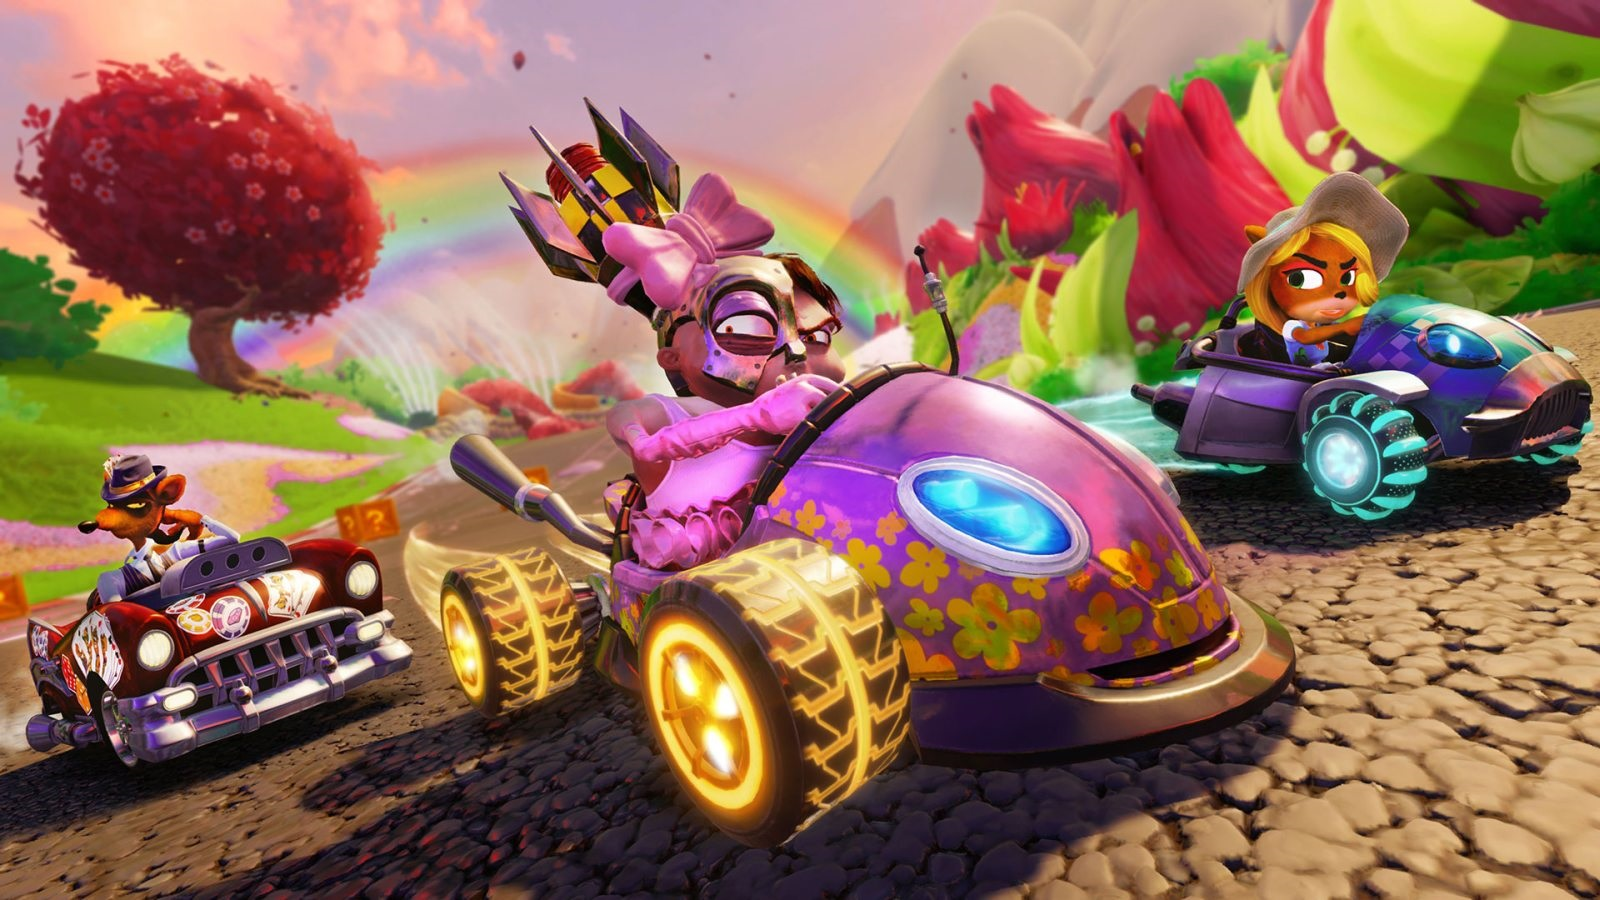 Crash Team Racing Nitro-Fueled; wallpaper: multiplayer